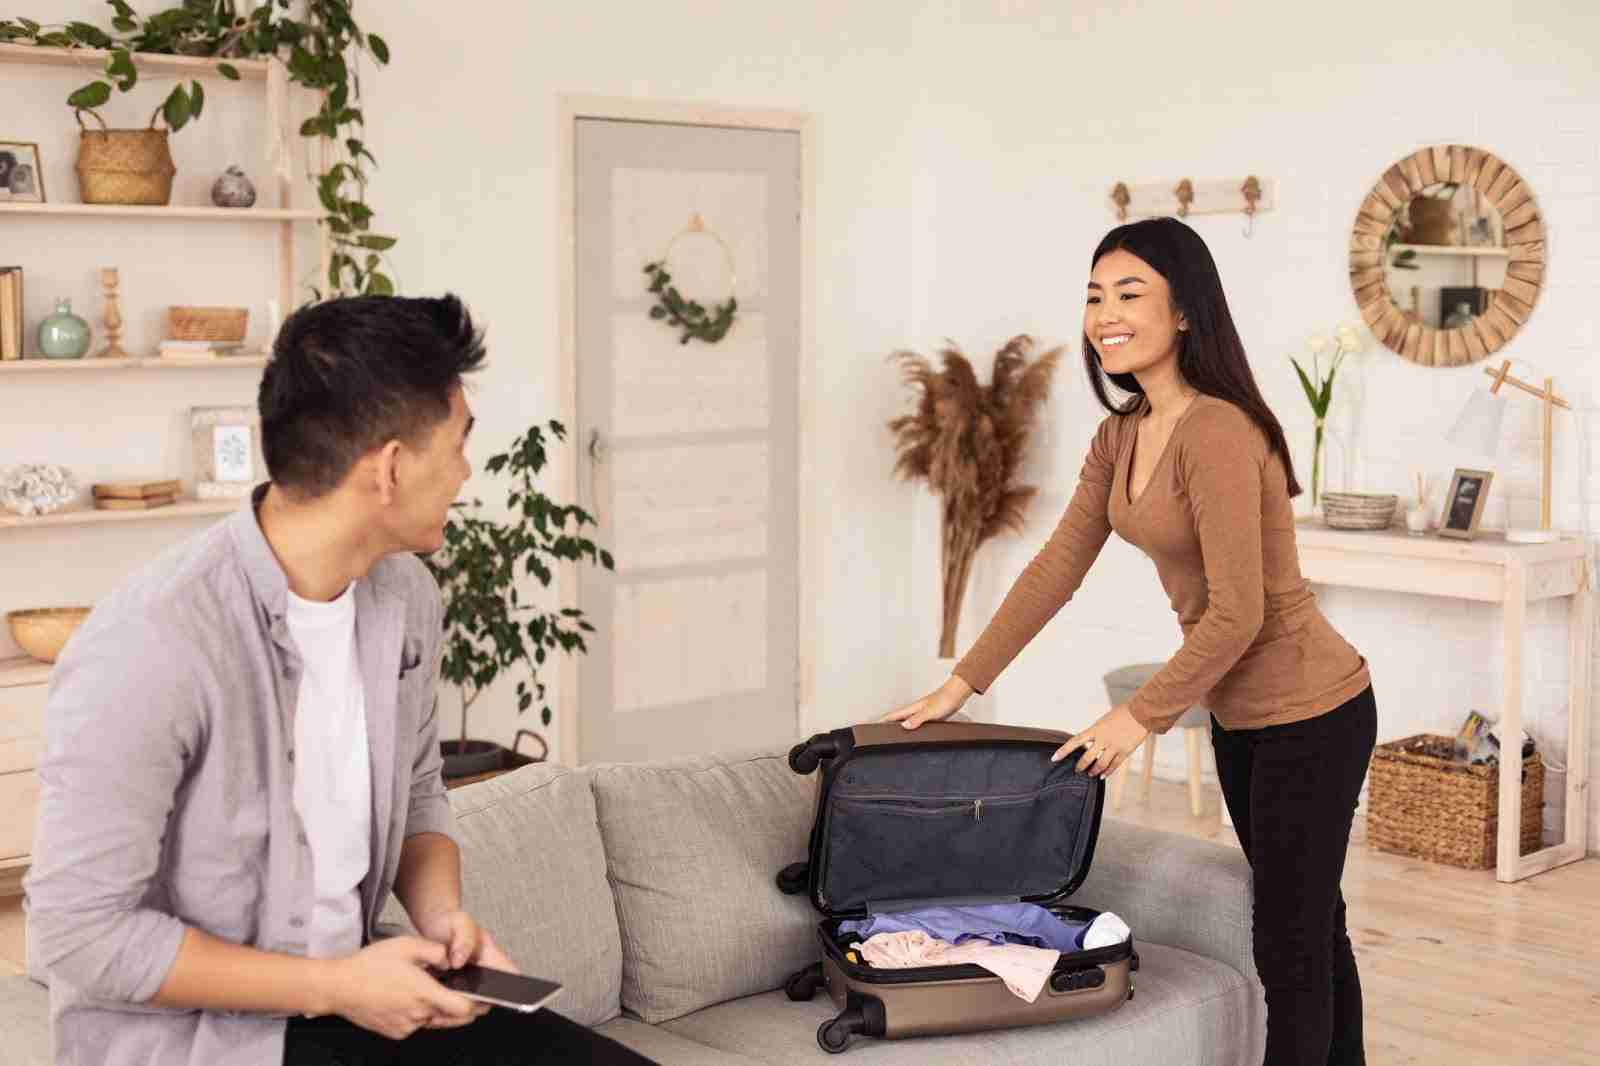 Couple unpacking in Airbnb